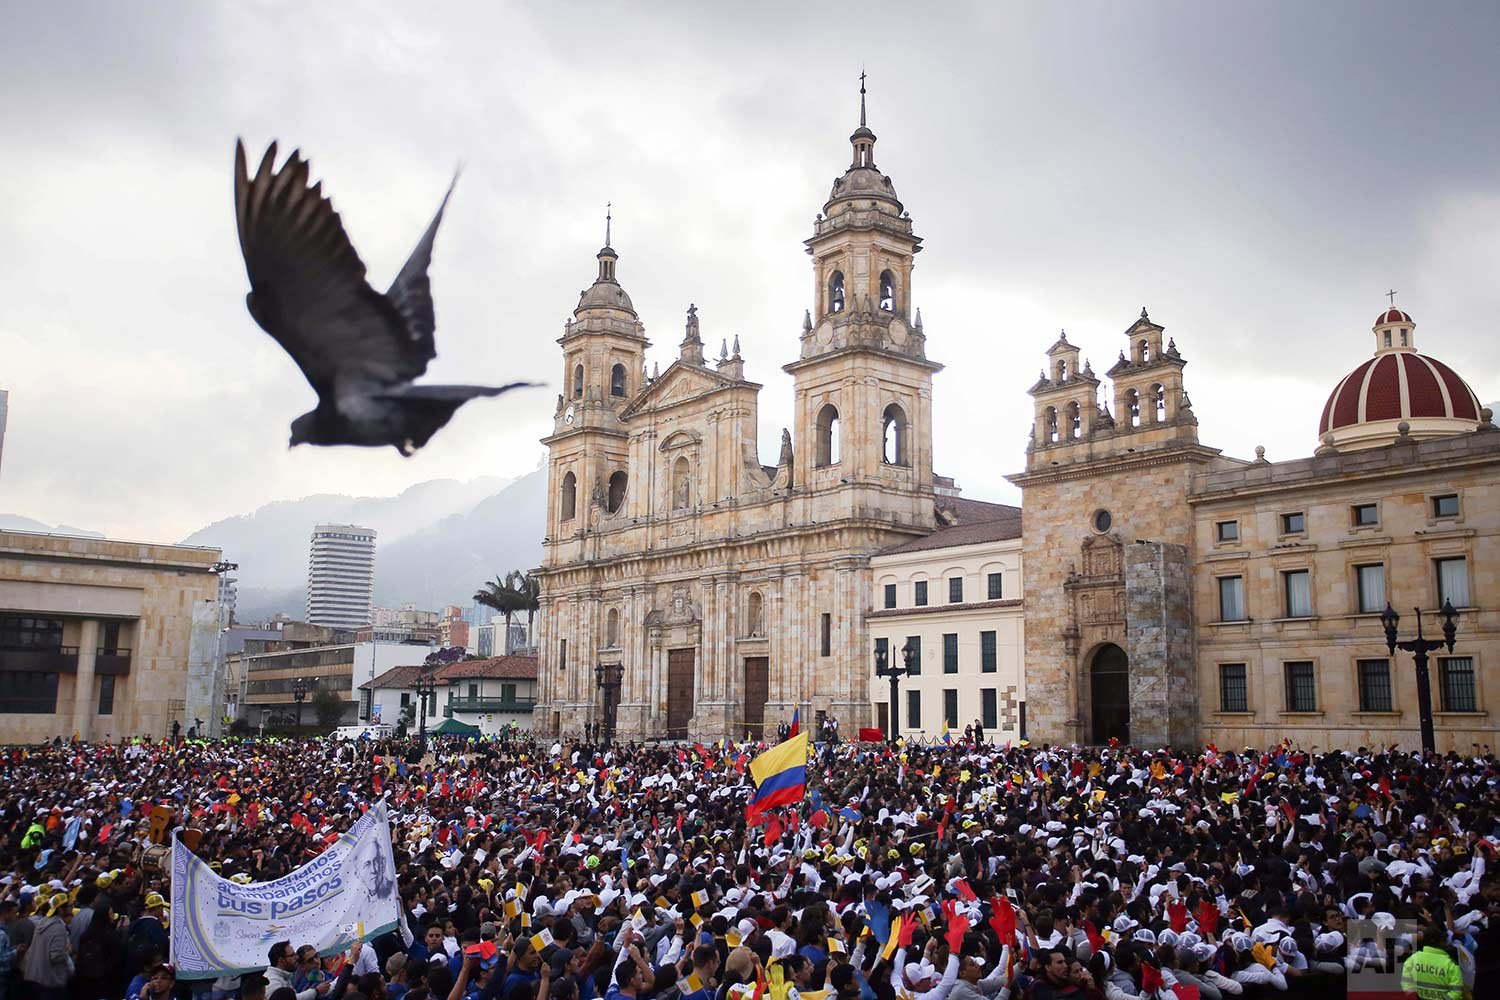 People gather in front of the Cathedral Primada in Simon Bolivar Square waiting for the arrival of Pope Francis in Bogota, Colombia, Thursday, Sept. 7, 2017. (AP Photo/Ivan Valencia)